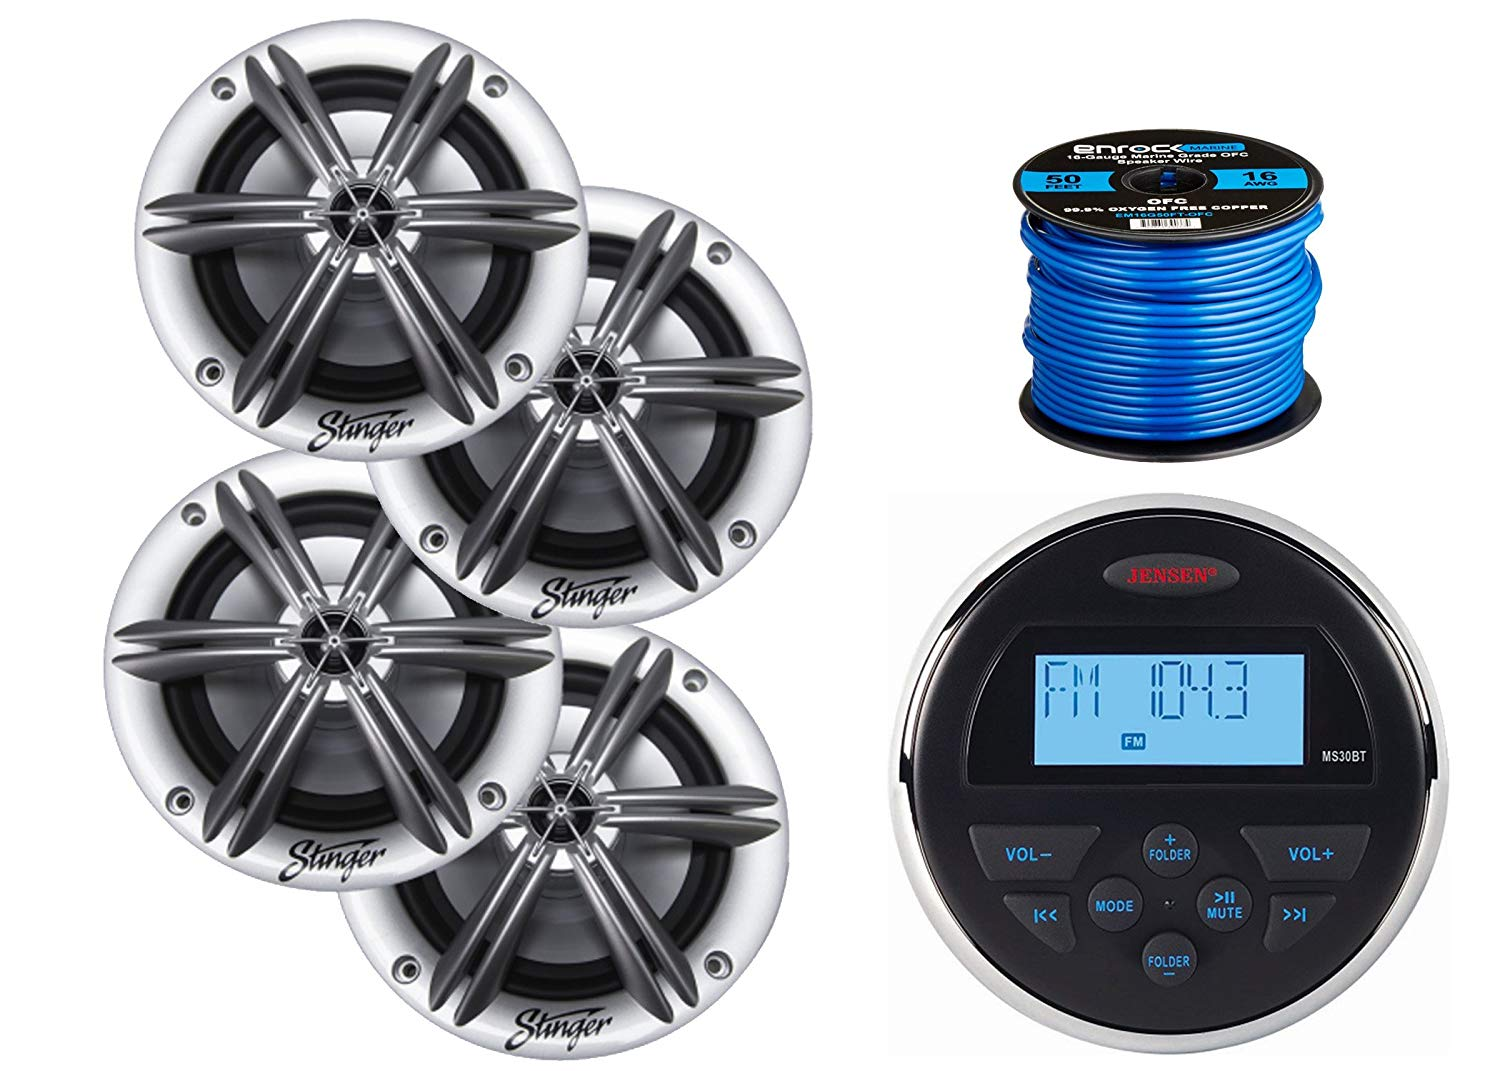 "Jensen MS-30BTR Mechless Compact Waterproof Stereo w/Bluetooth, 4 x Stinger PowerSports 6.5"" Marine Coaxial Speakers Without RGB Lighting (Silver), Enrock Marine-Grade 50 Foot 16-Gauge Speaker Wire"